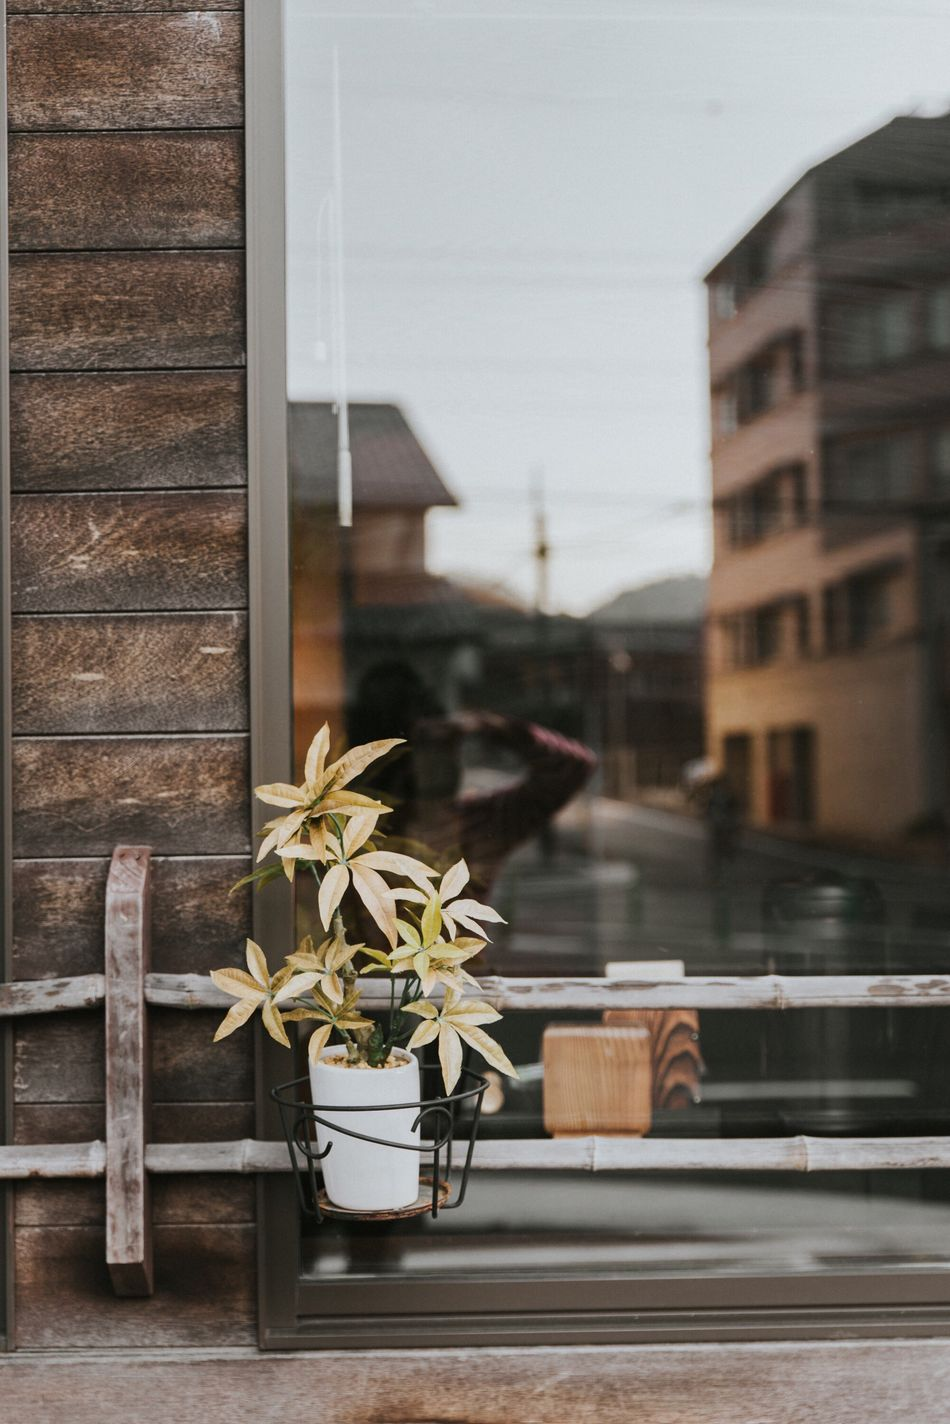 Memories of Japan ❤️ Window Sill Window Building Exterior Architecture Wood - Material Wood Portrait Of A Woman Focus On Foreground Travel Photography EyeEm Best Shots Façade EyeEmBestPics Built Structure Urban Exploration Eyem Best Shots